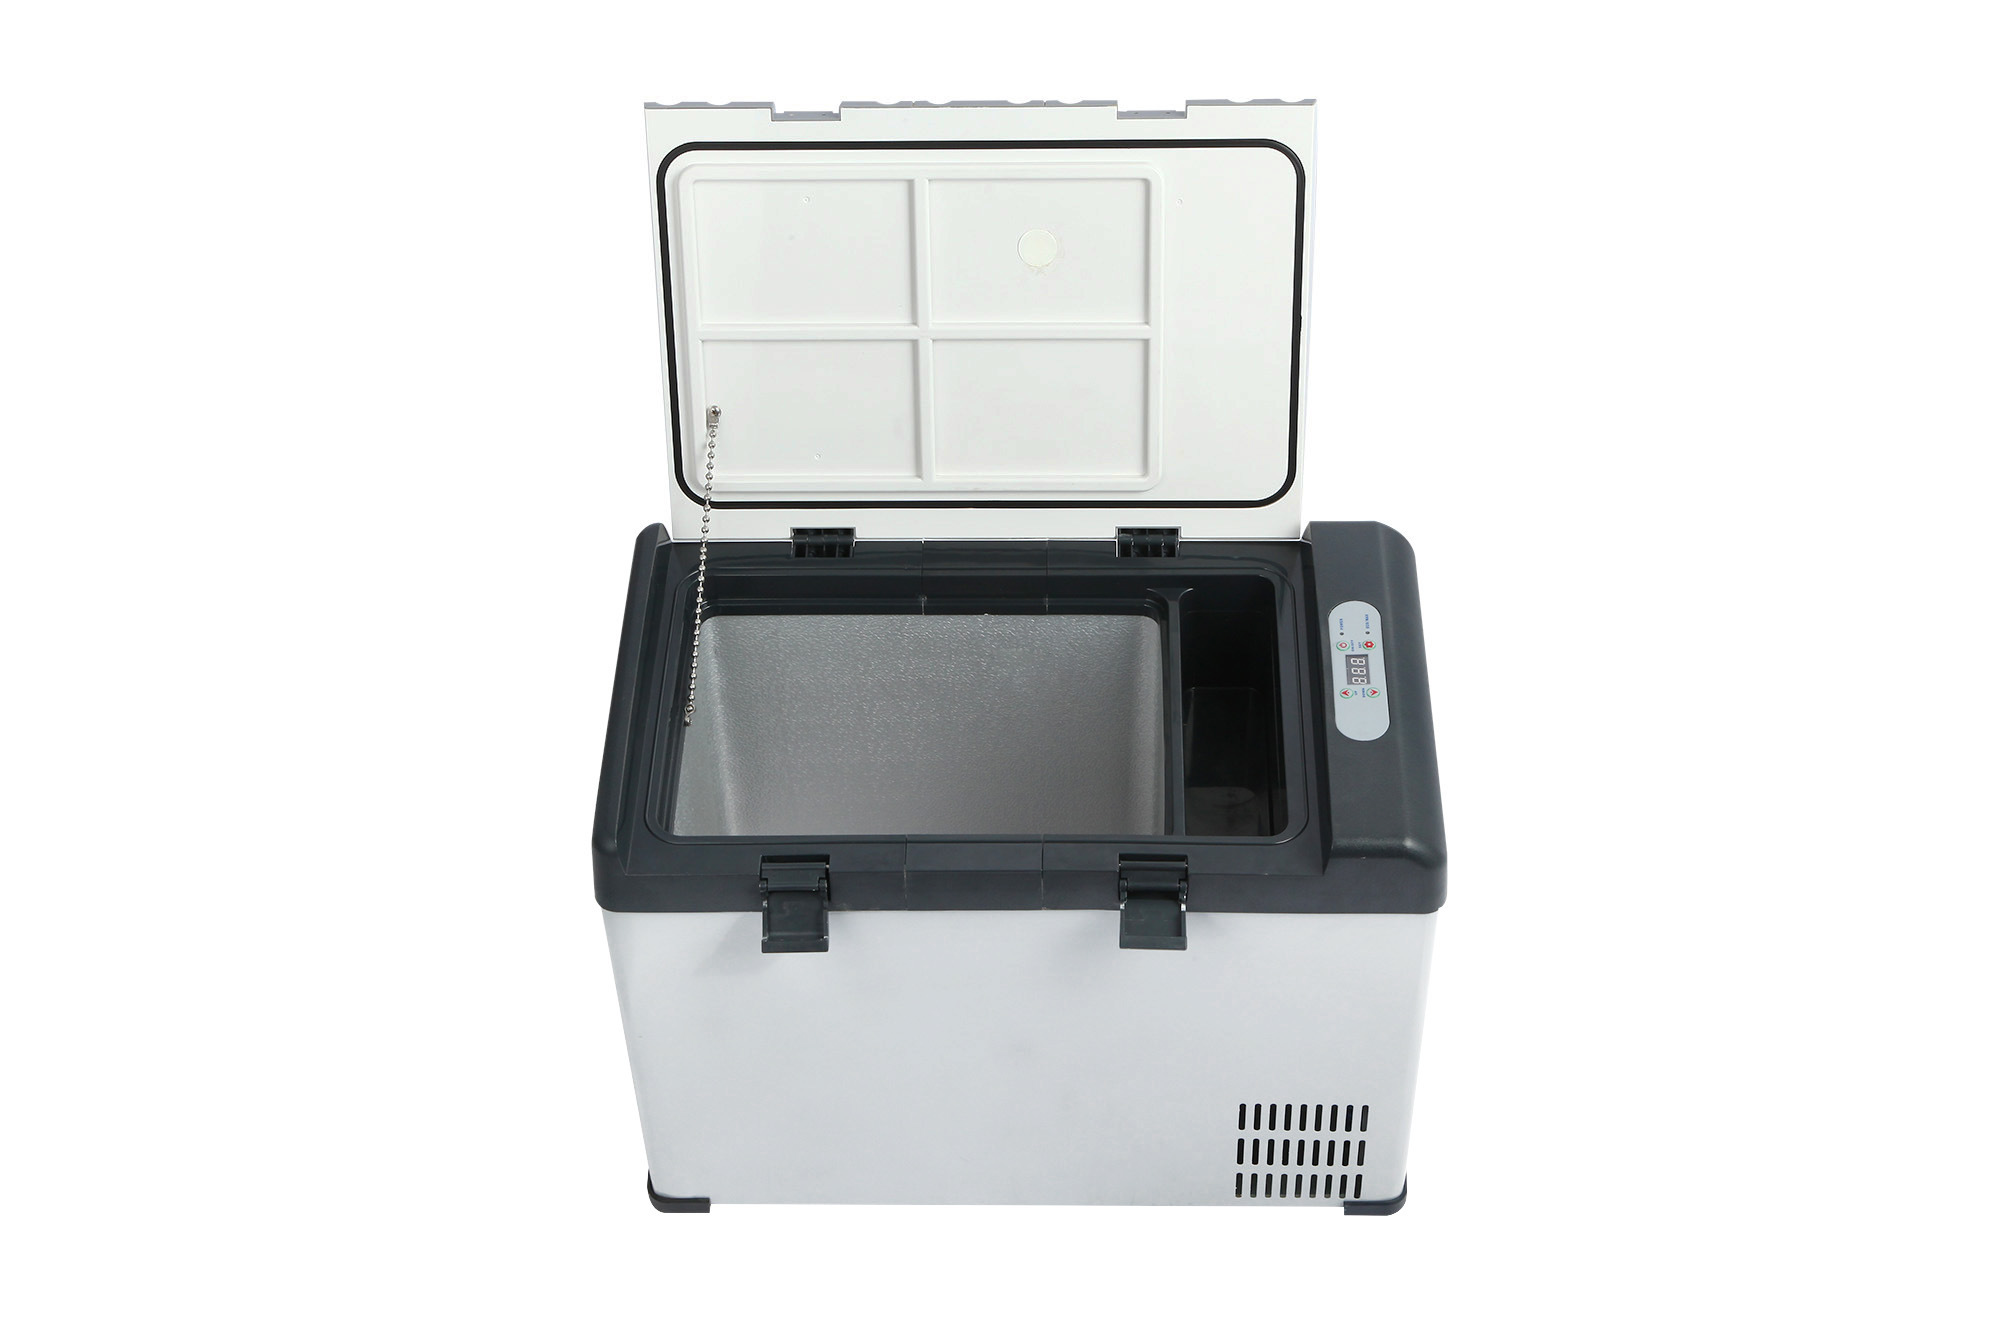 Innovative DC Compressor Refrigerator 42liter DC12/24V with AC Adaptor (100-240V) Both Used in Car or at Home